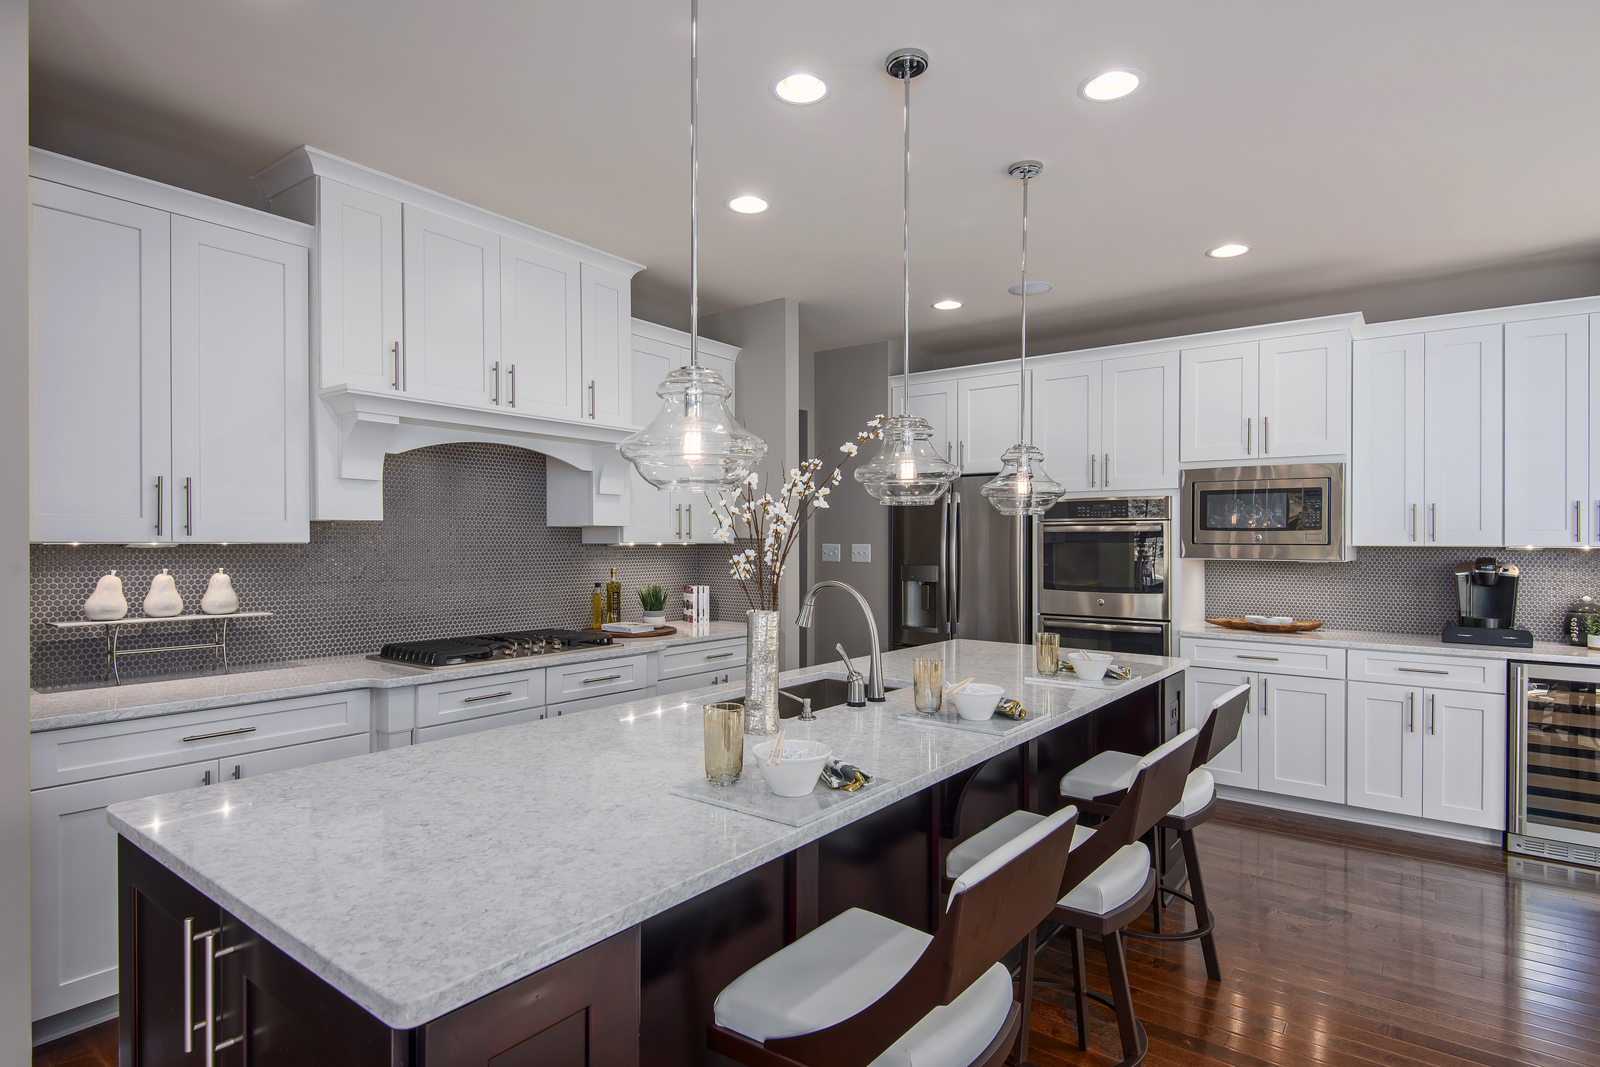 Large open kitchens include granite countertops and hardwood floors.